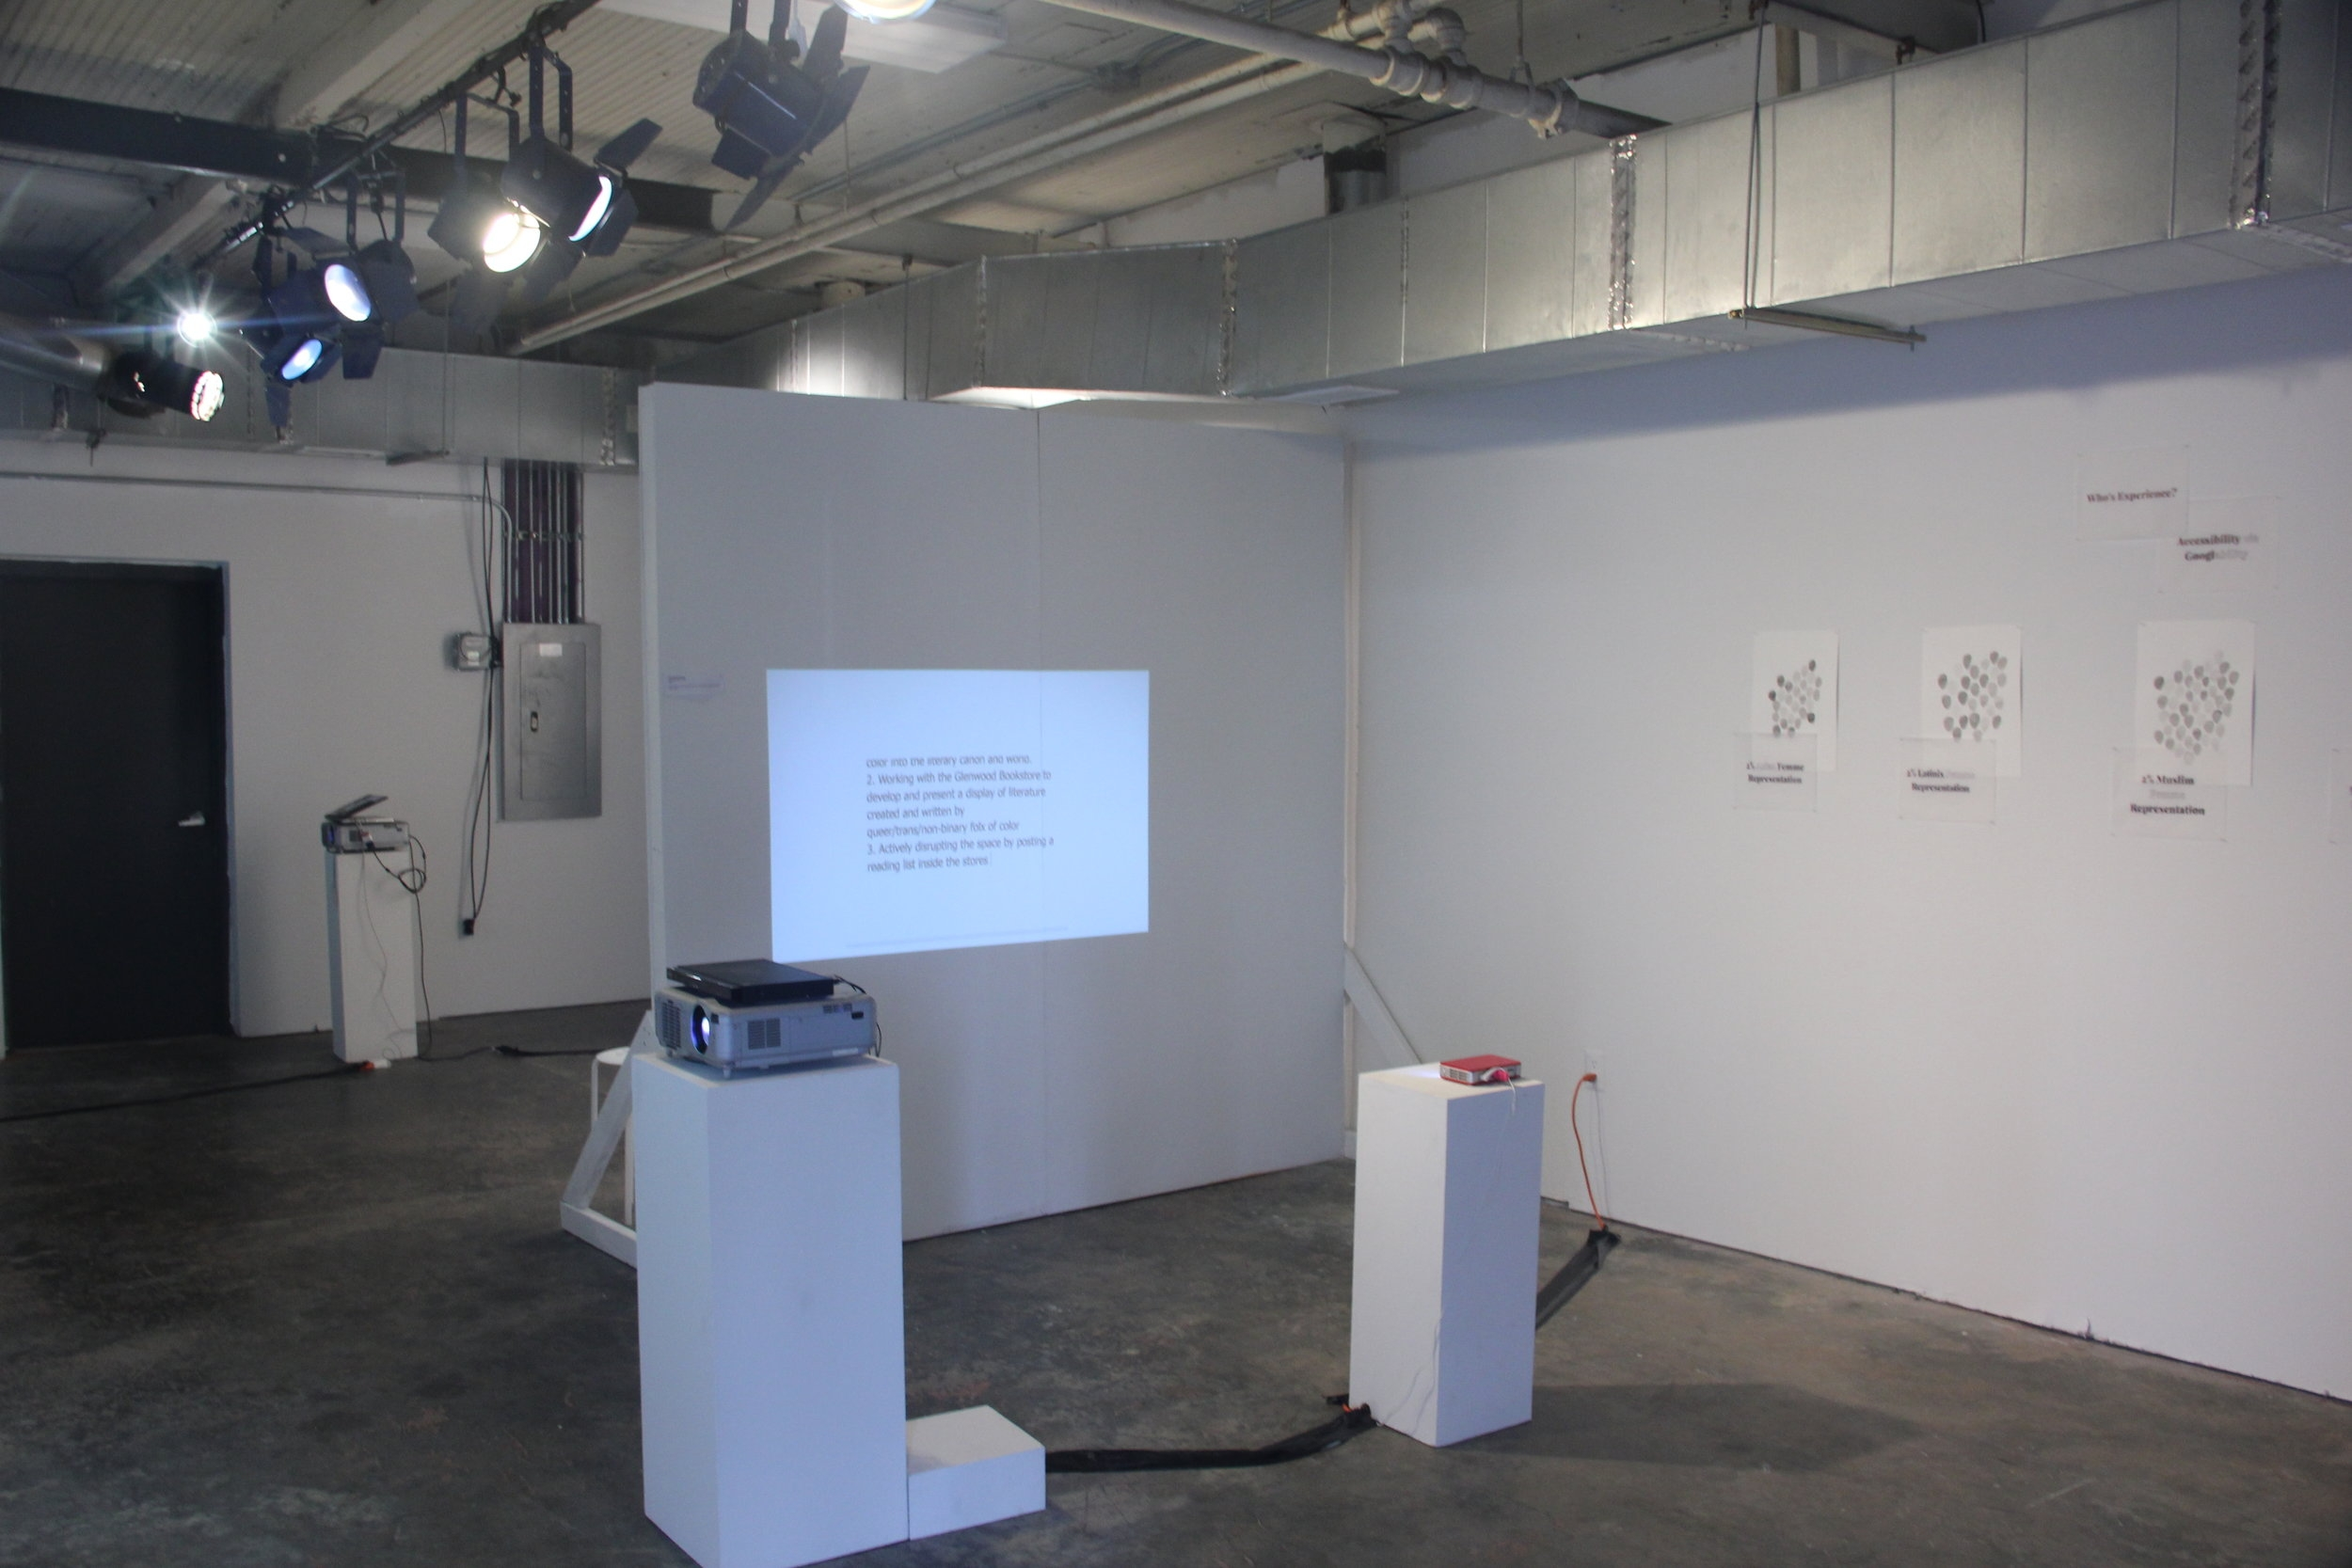 First Show at Greensboro Project Space